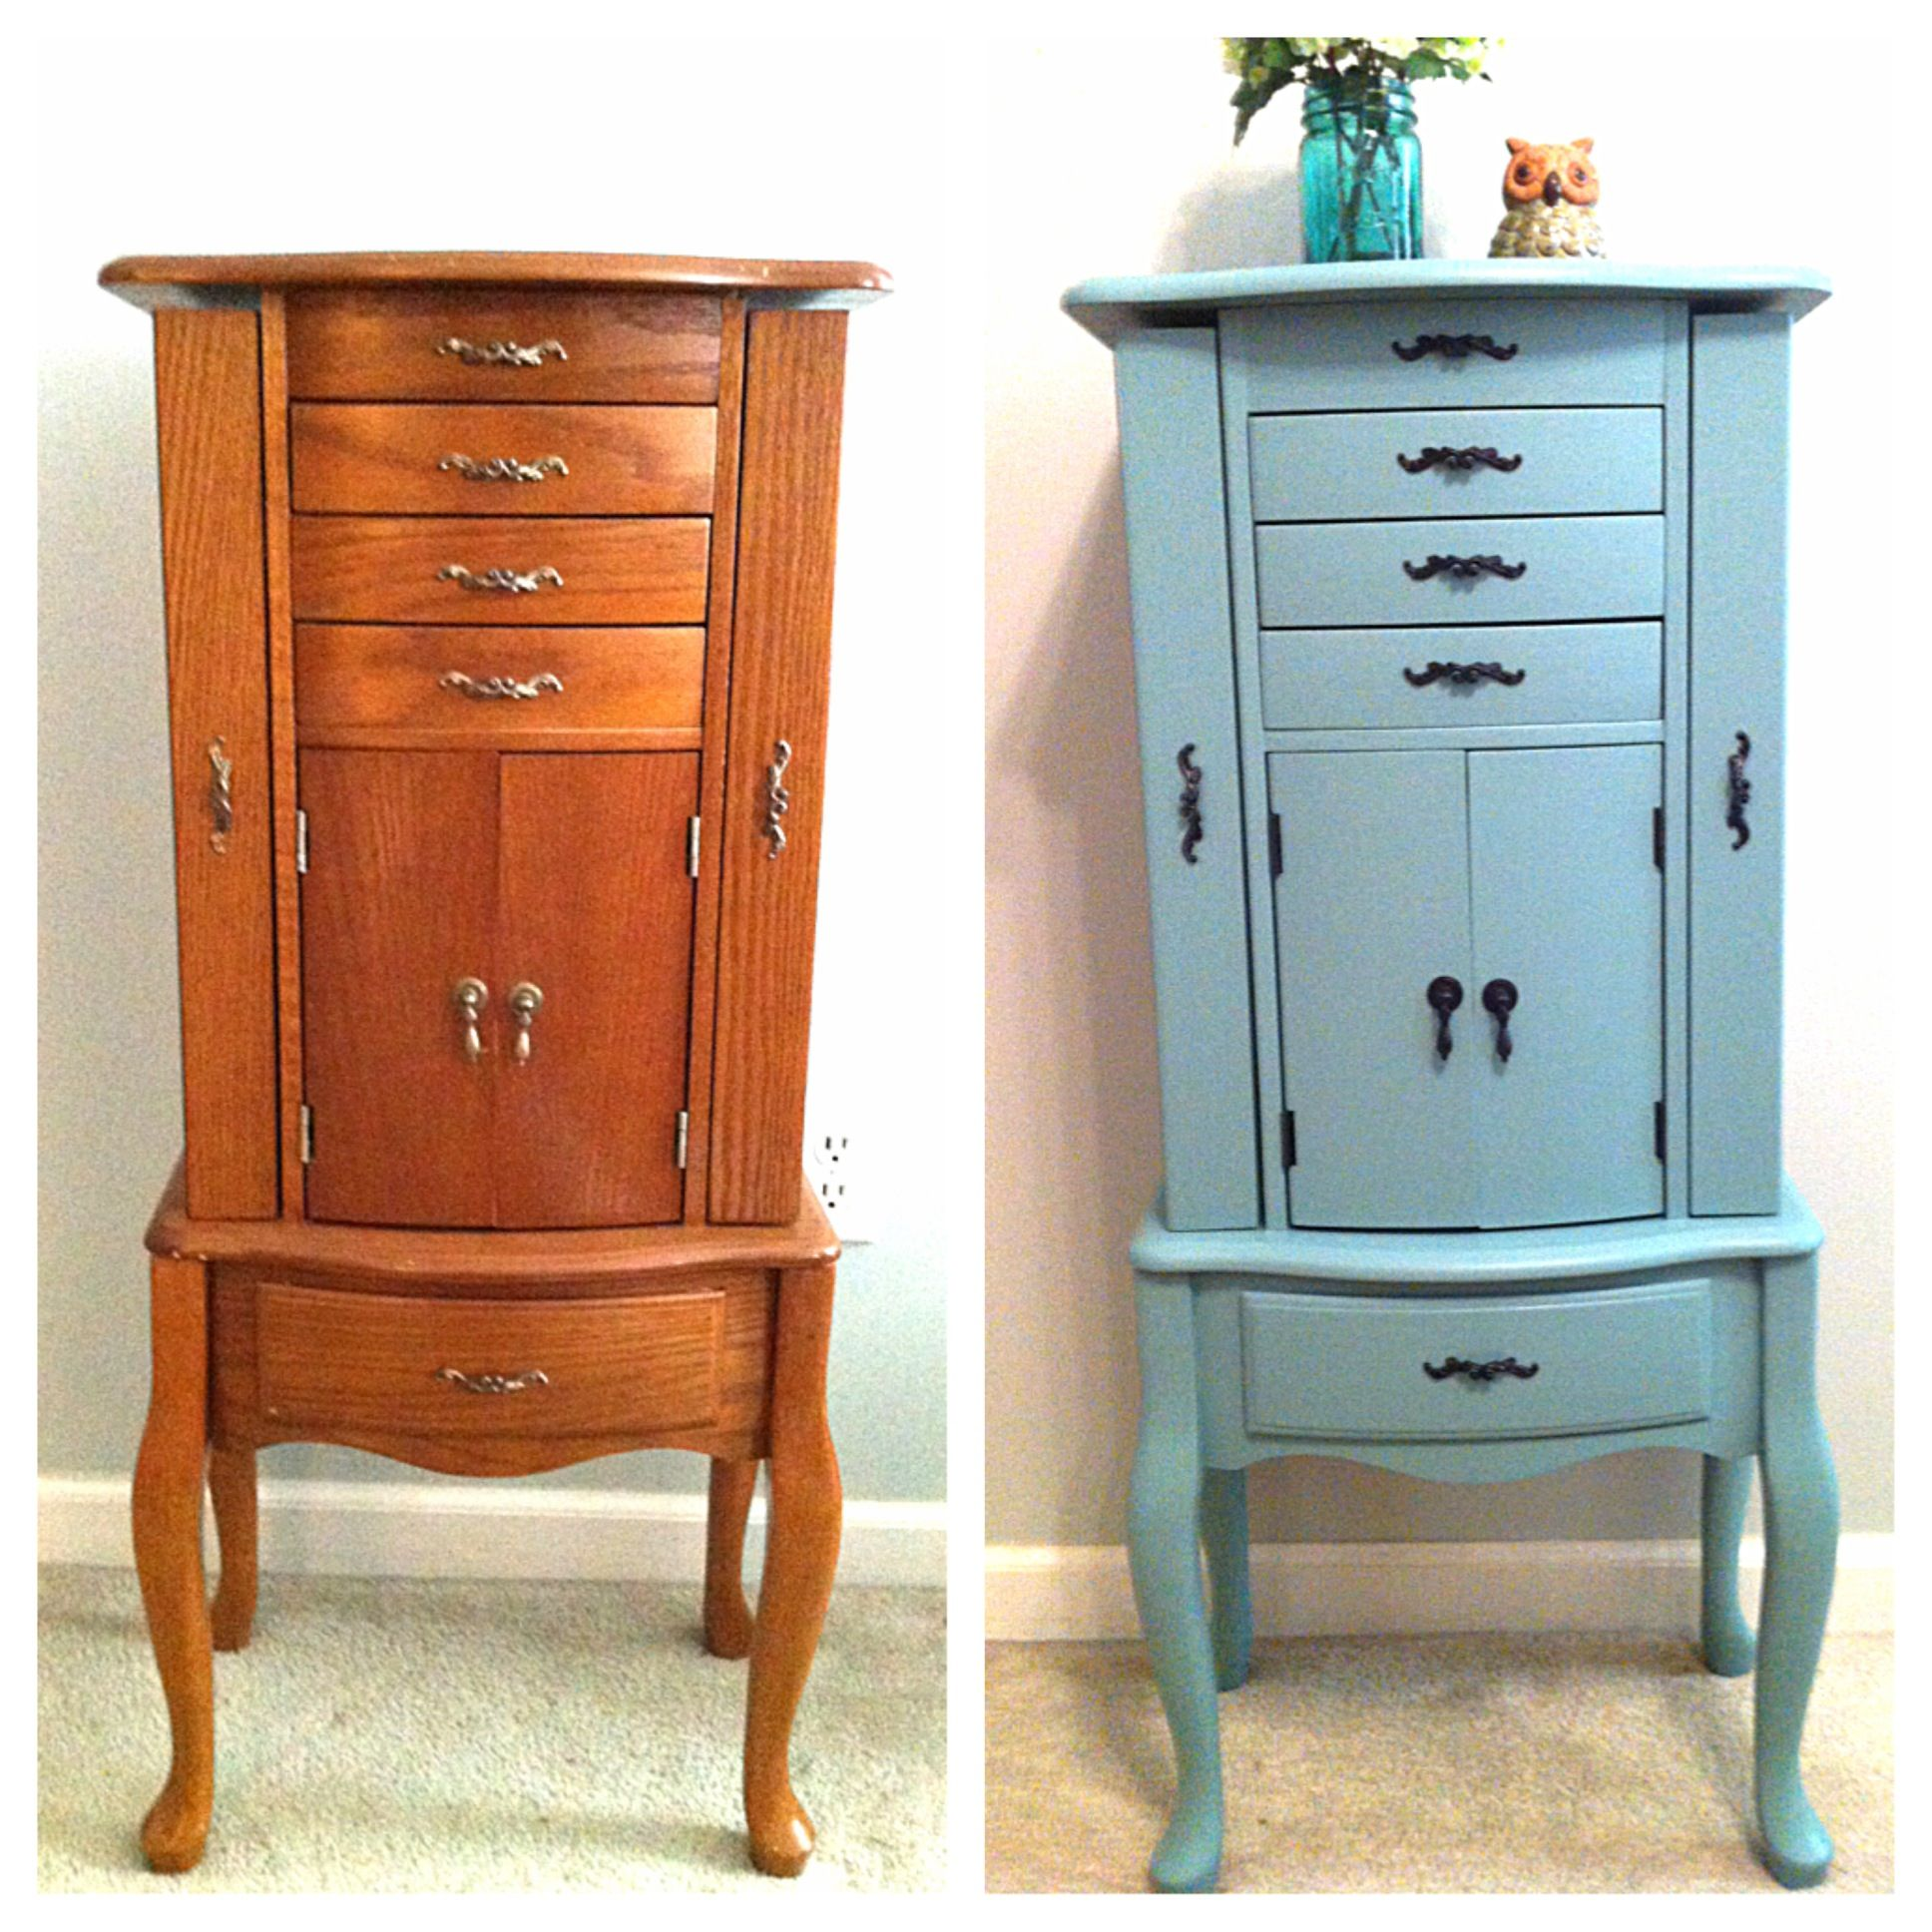 But Armoir Diy Jewelry Armoire Redo Painted In Valspar Patina Blue But